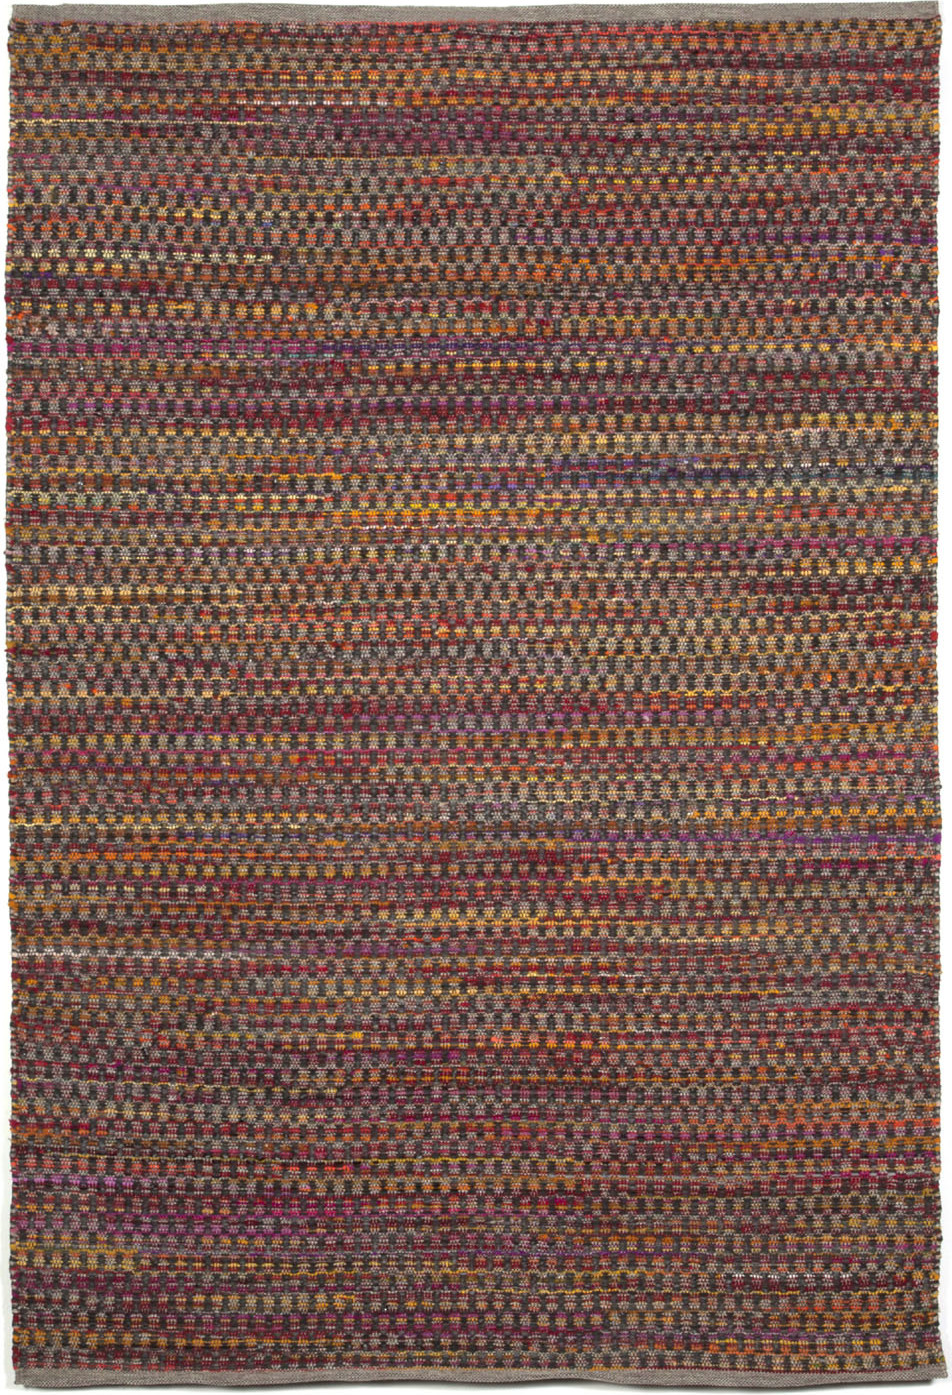 Taos meadows red hand woven 5'x7'6